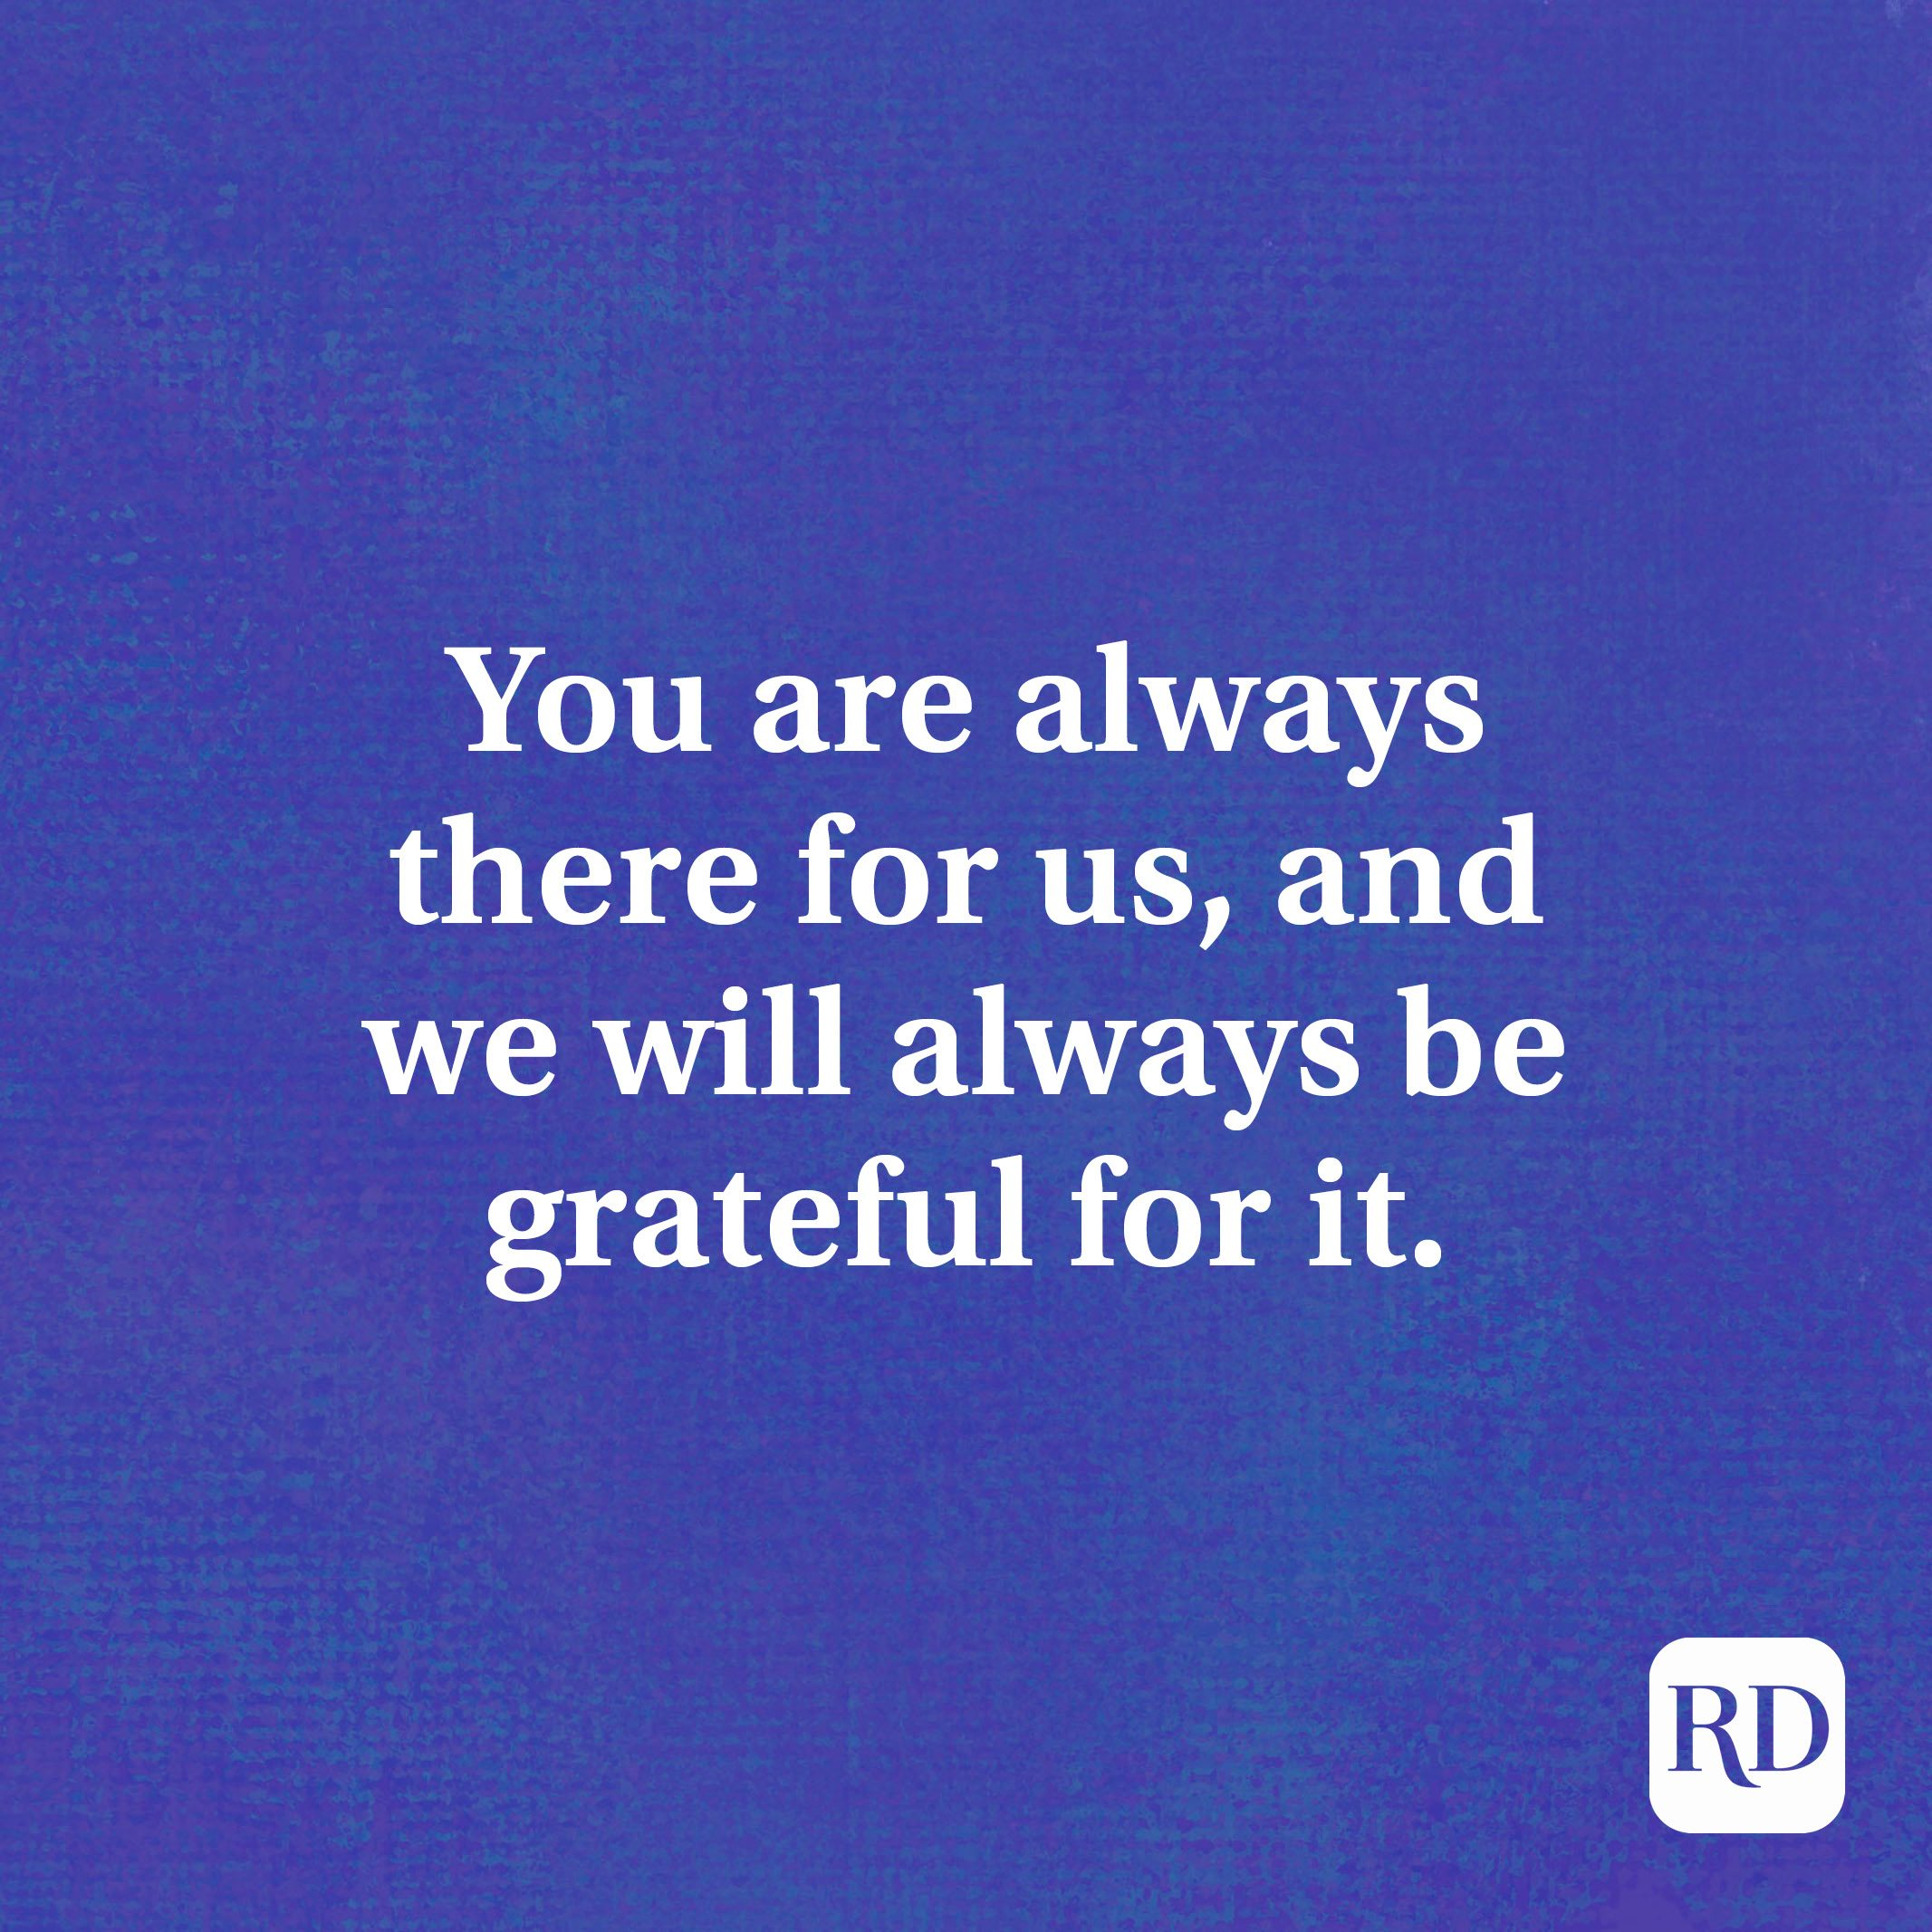 You are always there for us, and we will always be grateful for it.